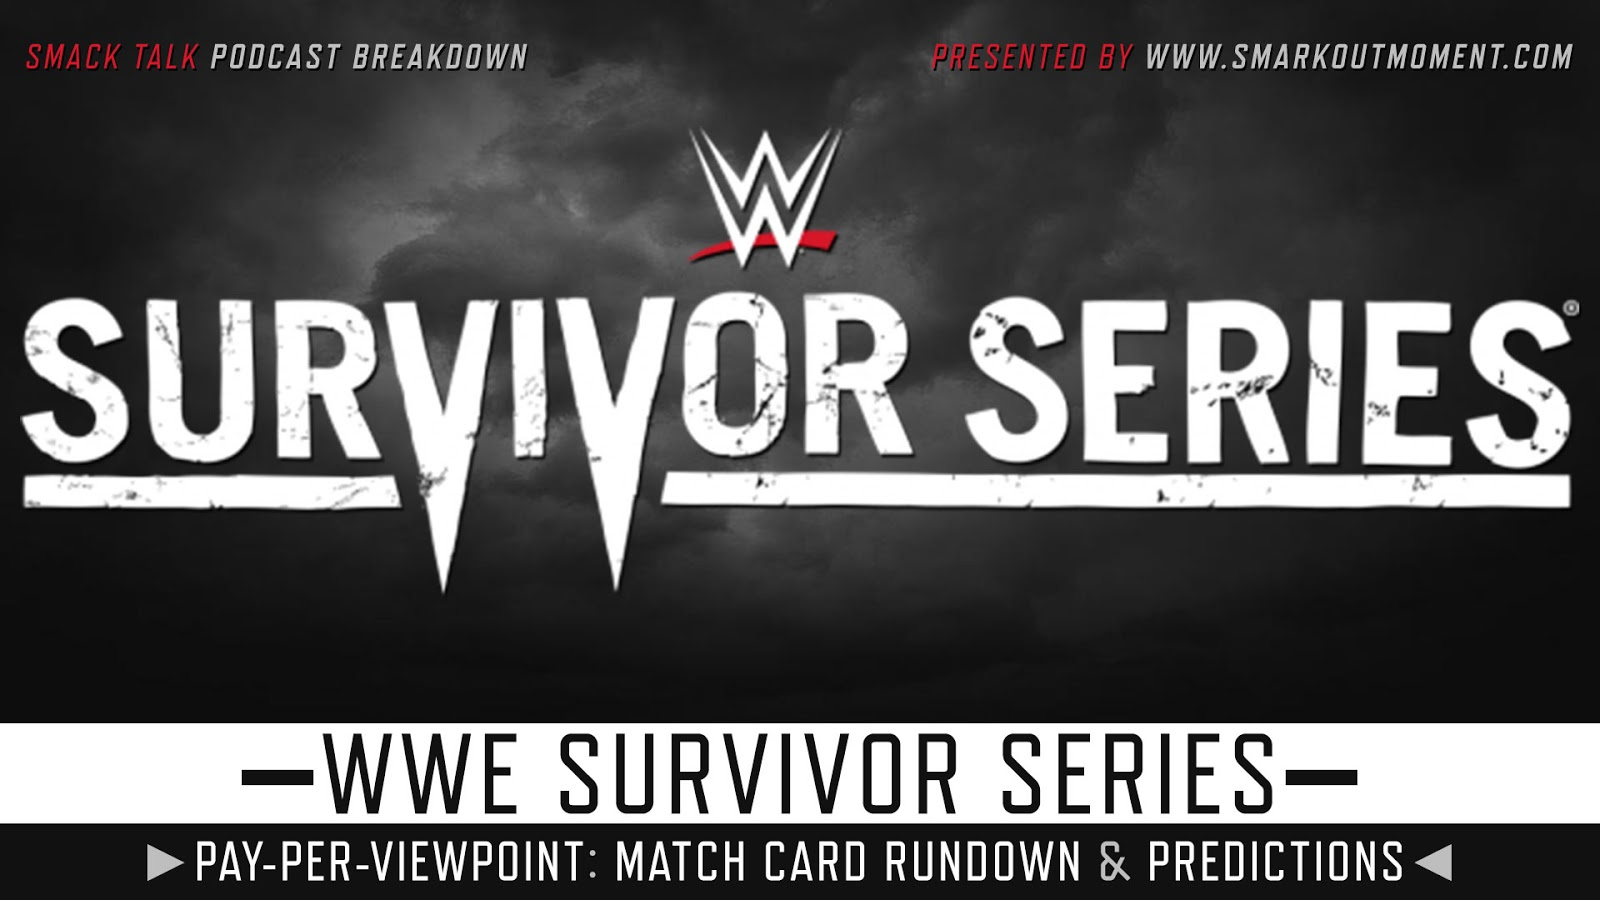 WWE Survivor Series 2019 spoilers podcast